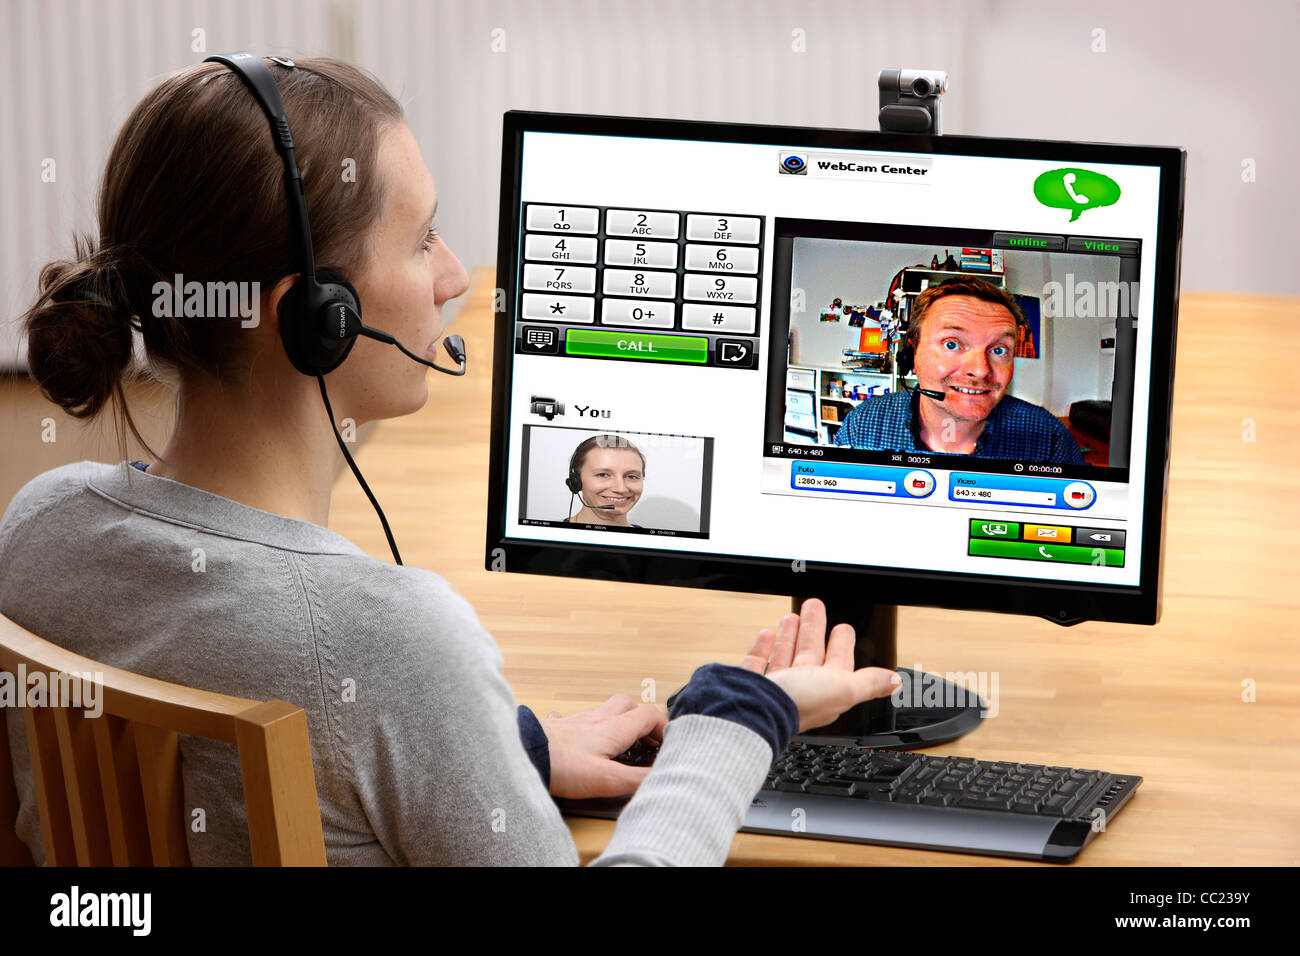 männlicher Video-Chat